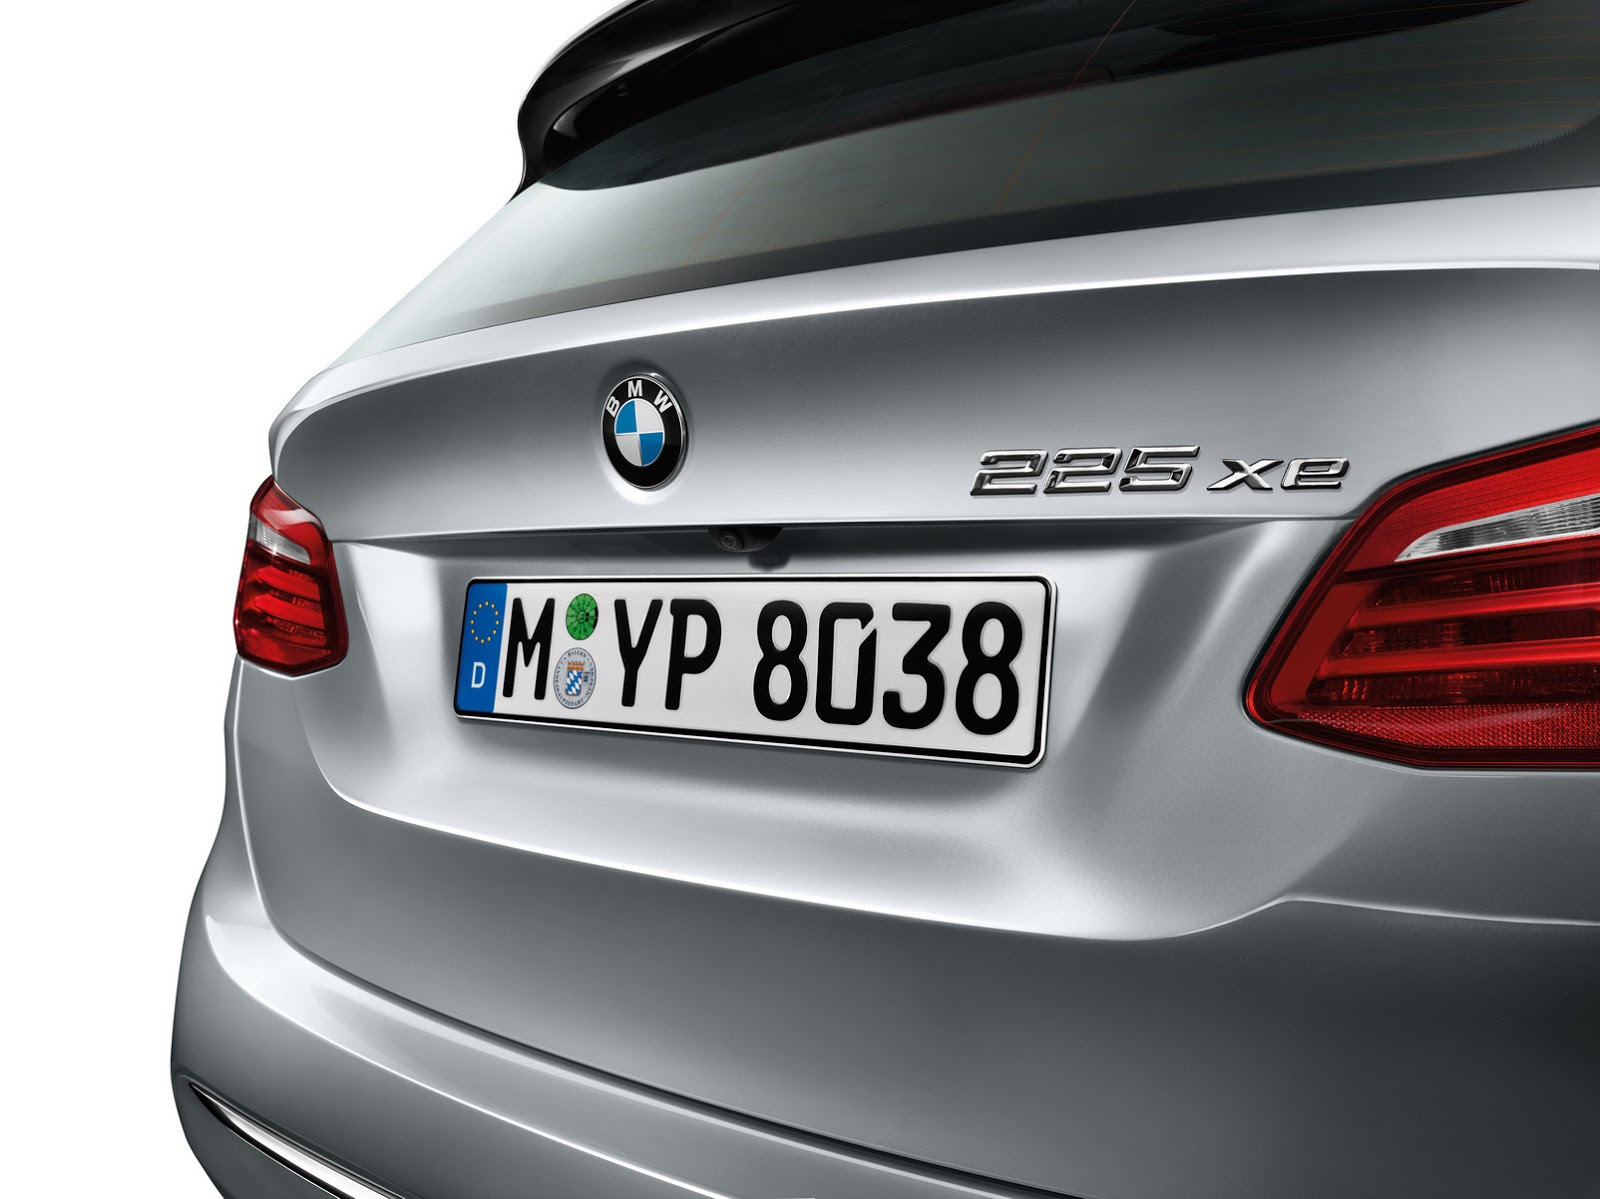 New Bmw 225xe Active Tourer Is An Awd Plug In Hybrid